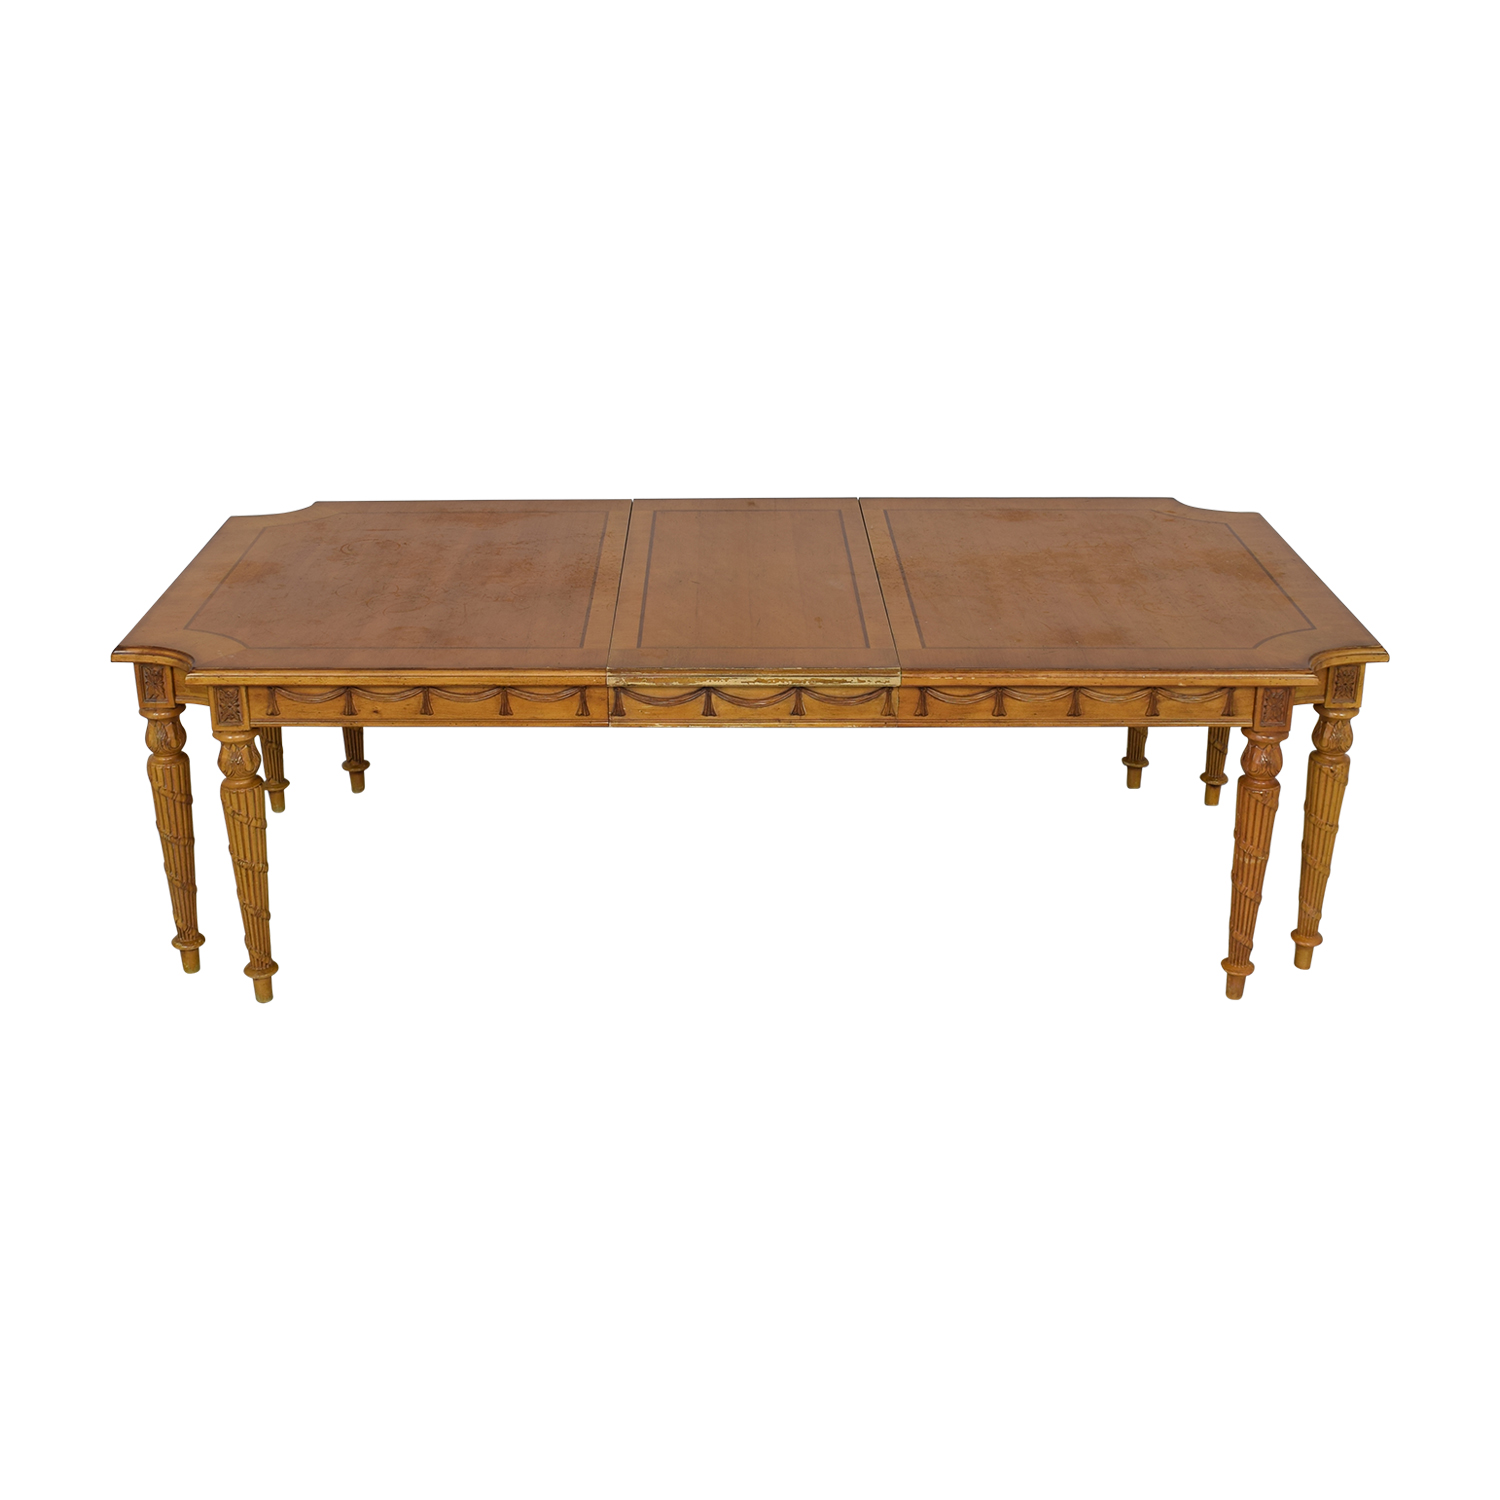 Century Furniture Century Furniture Dining Table second hand